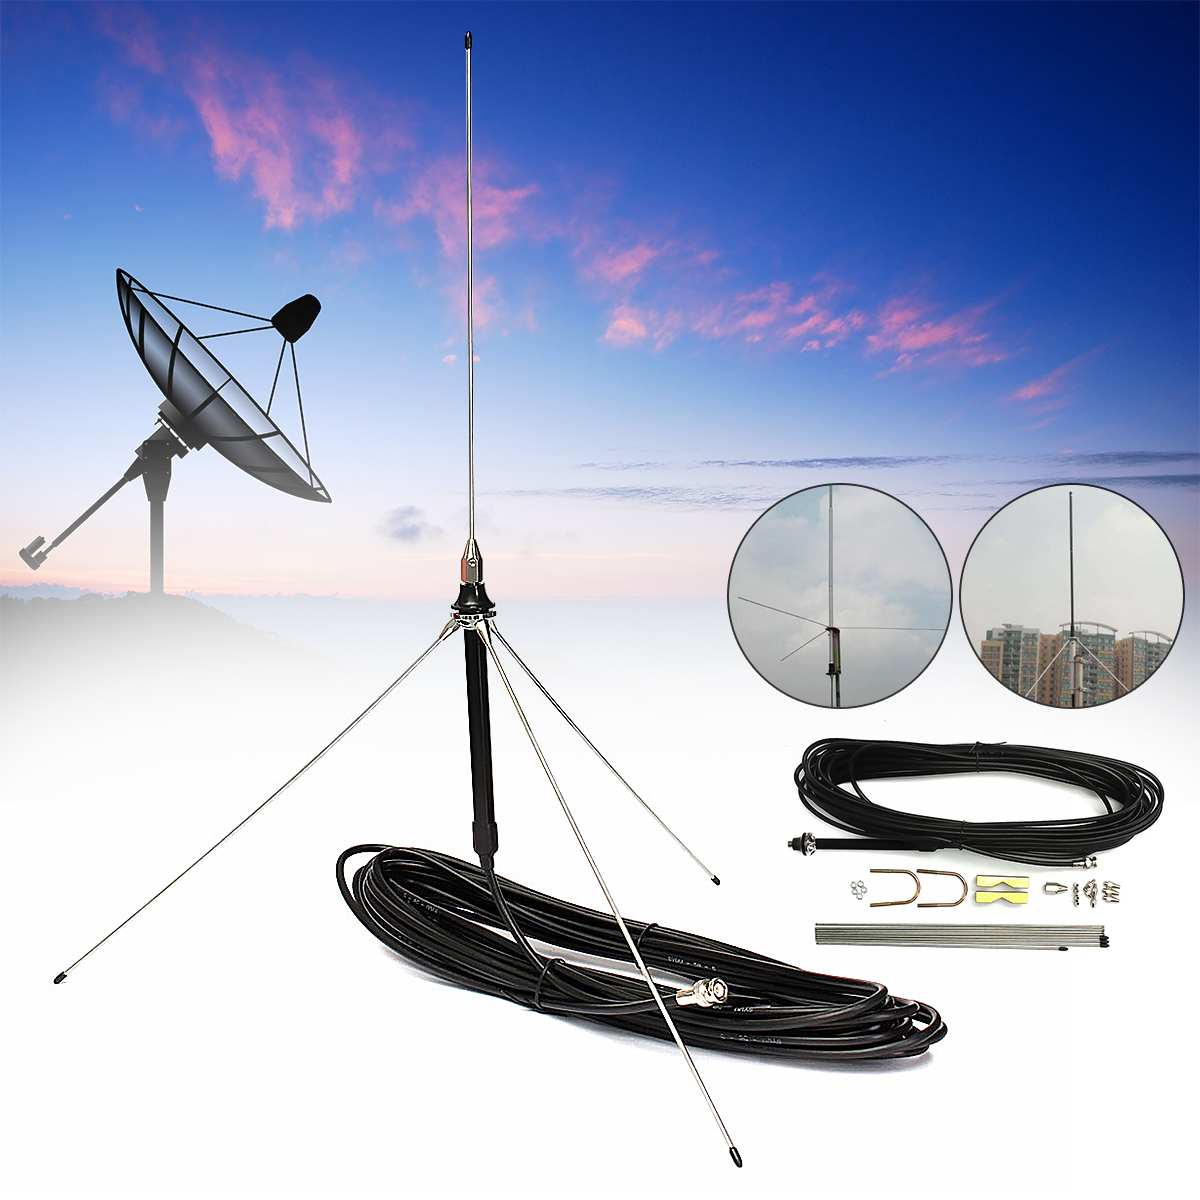 New 15M Cable Powerful 1/4 Wavelength GP Antenna for 0.5-30W Watt FM TransmitterNew 15M Cable Powerful 1/4 Wavelength GP Antenna for 0.5-30W Watt FM Transmitter